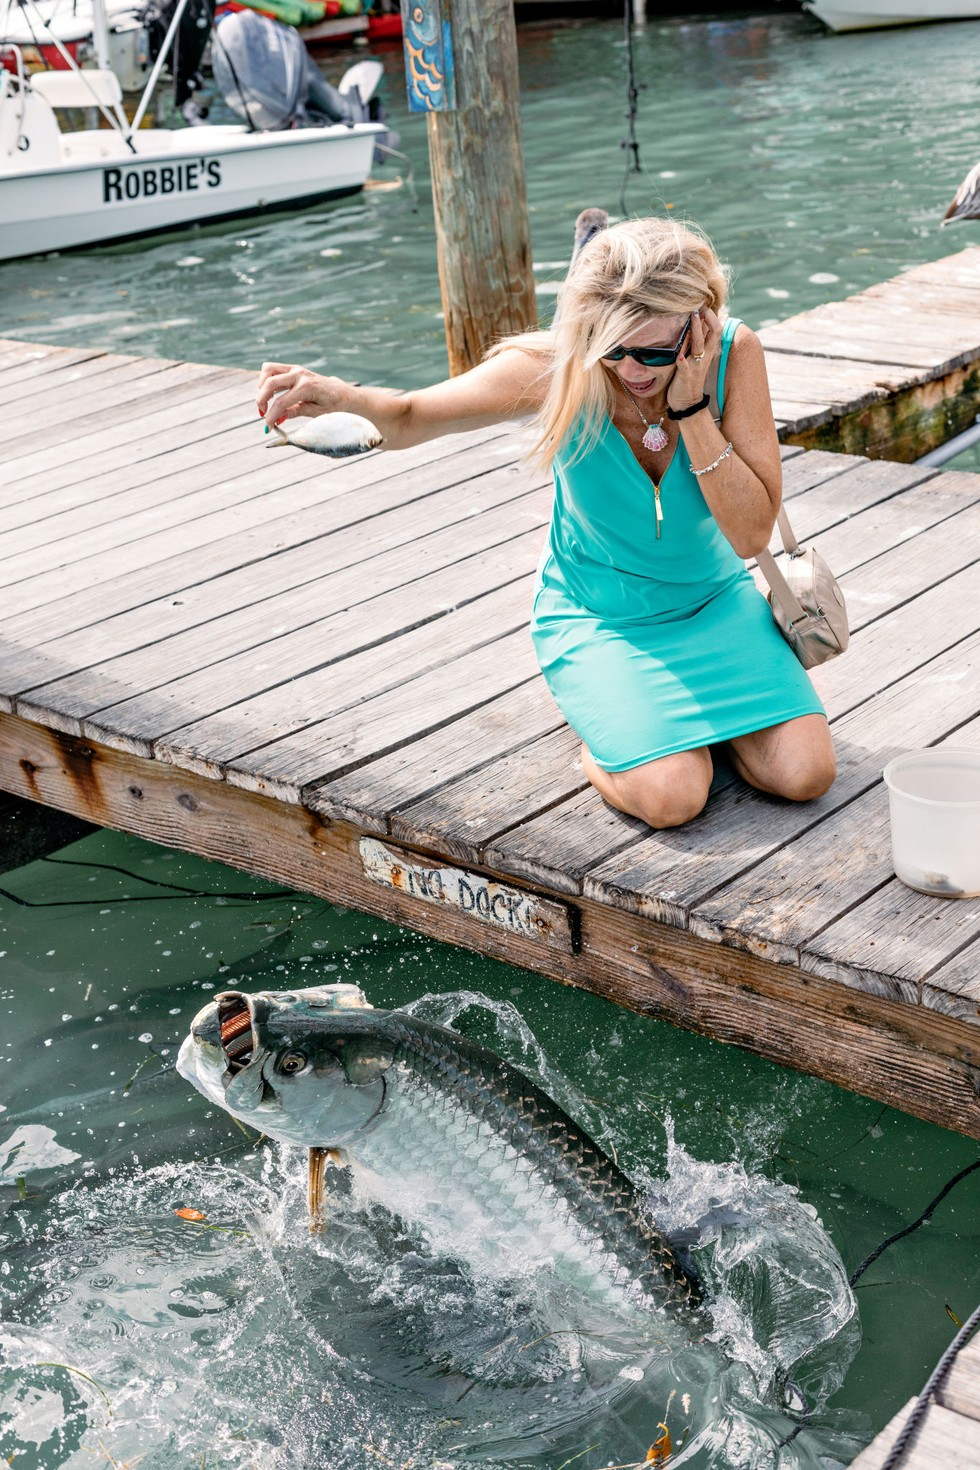 Feeding a tarpon at Robbie's Marina